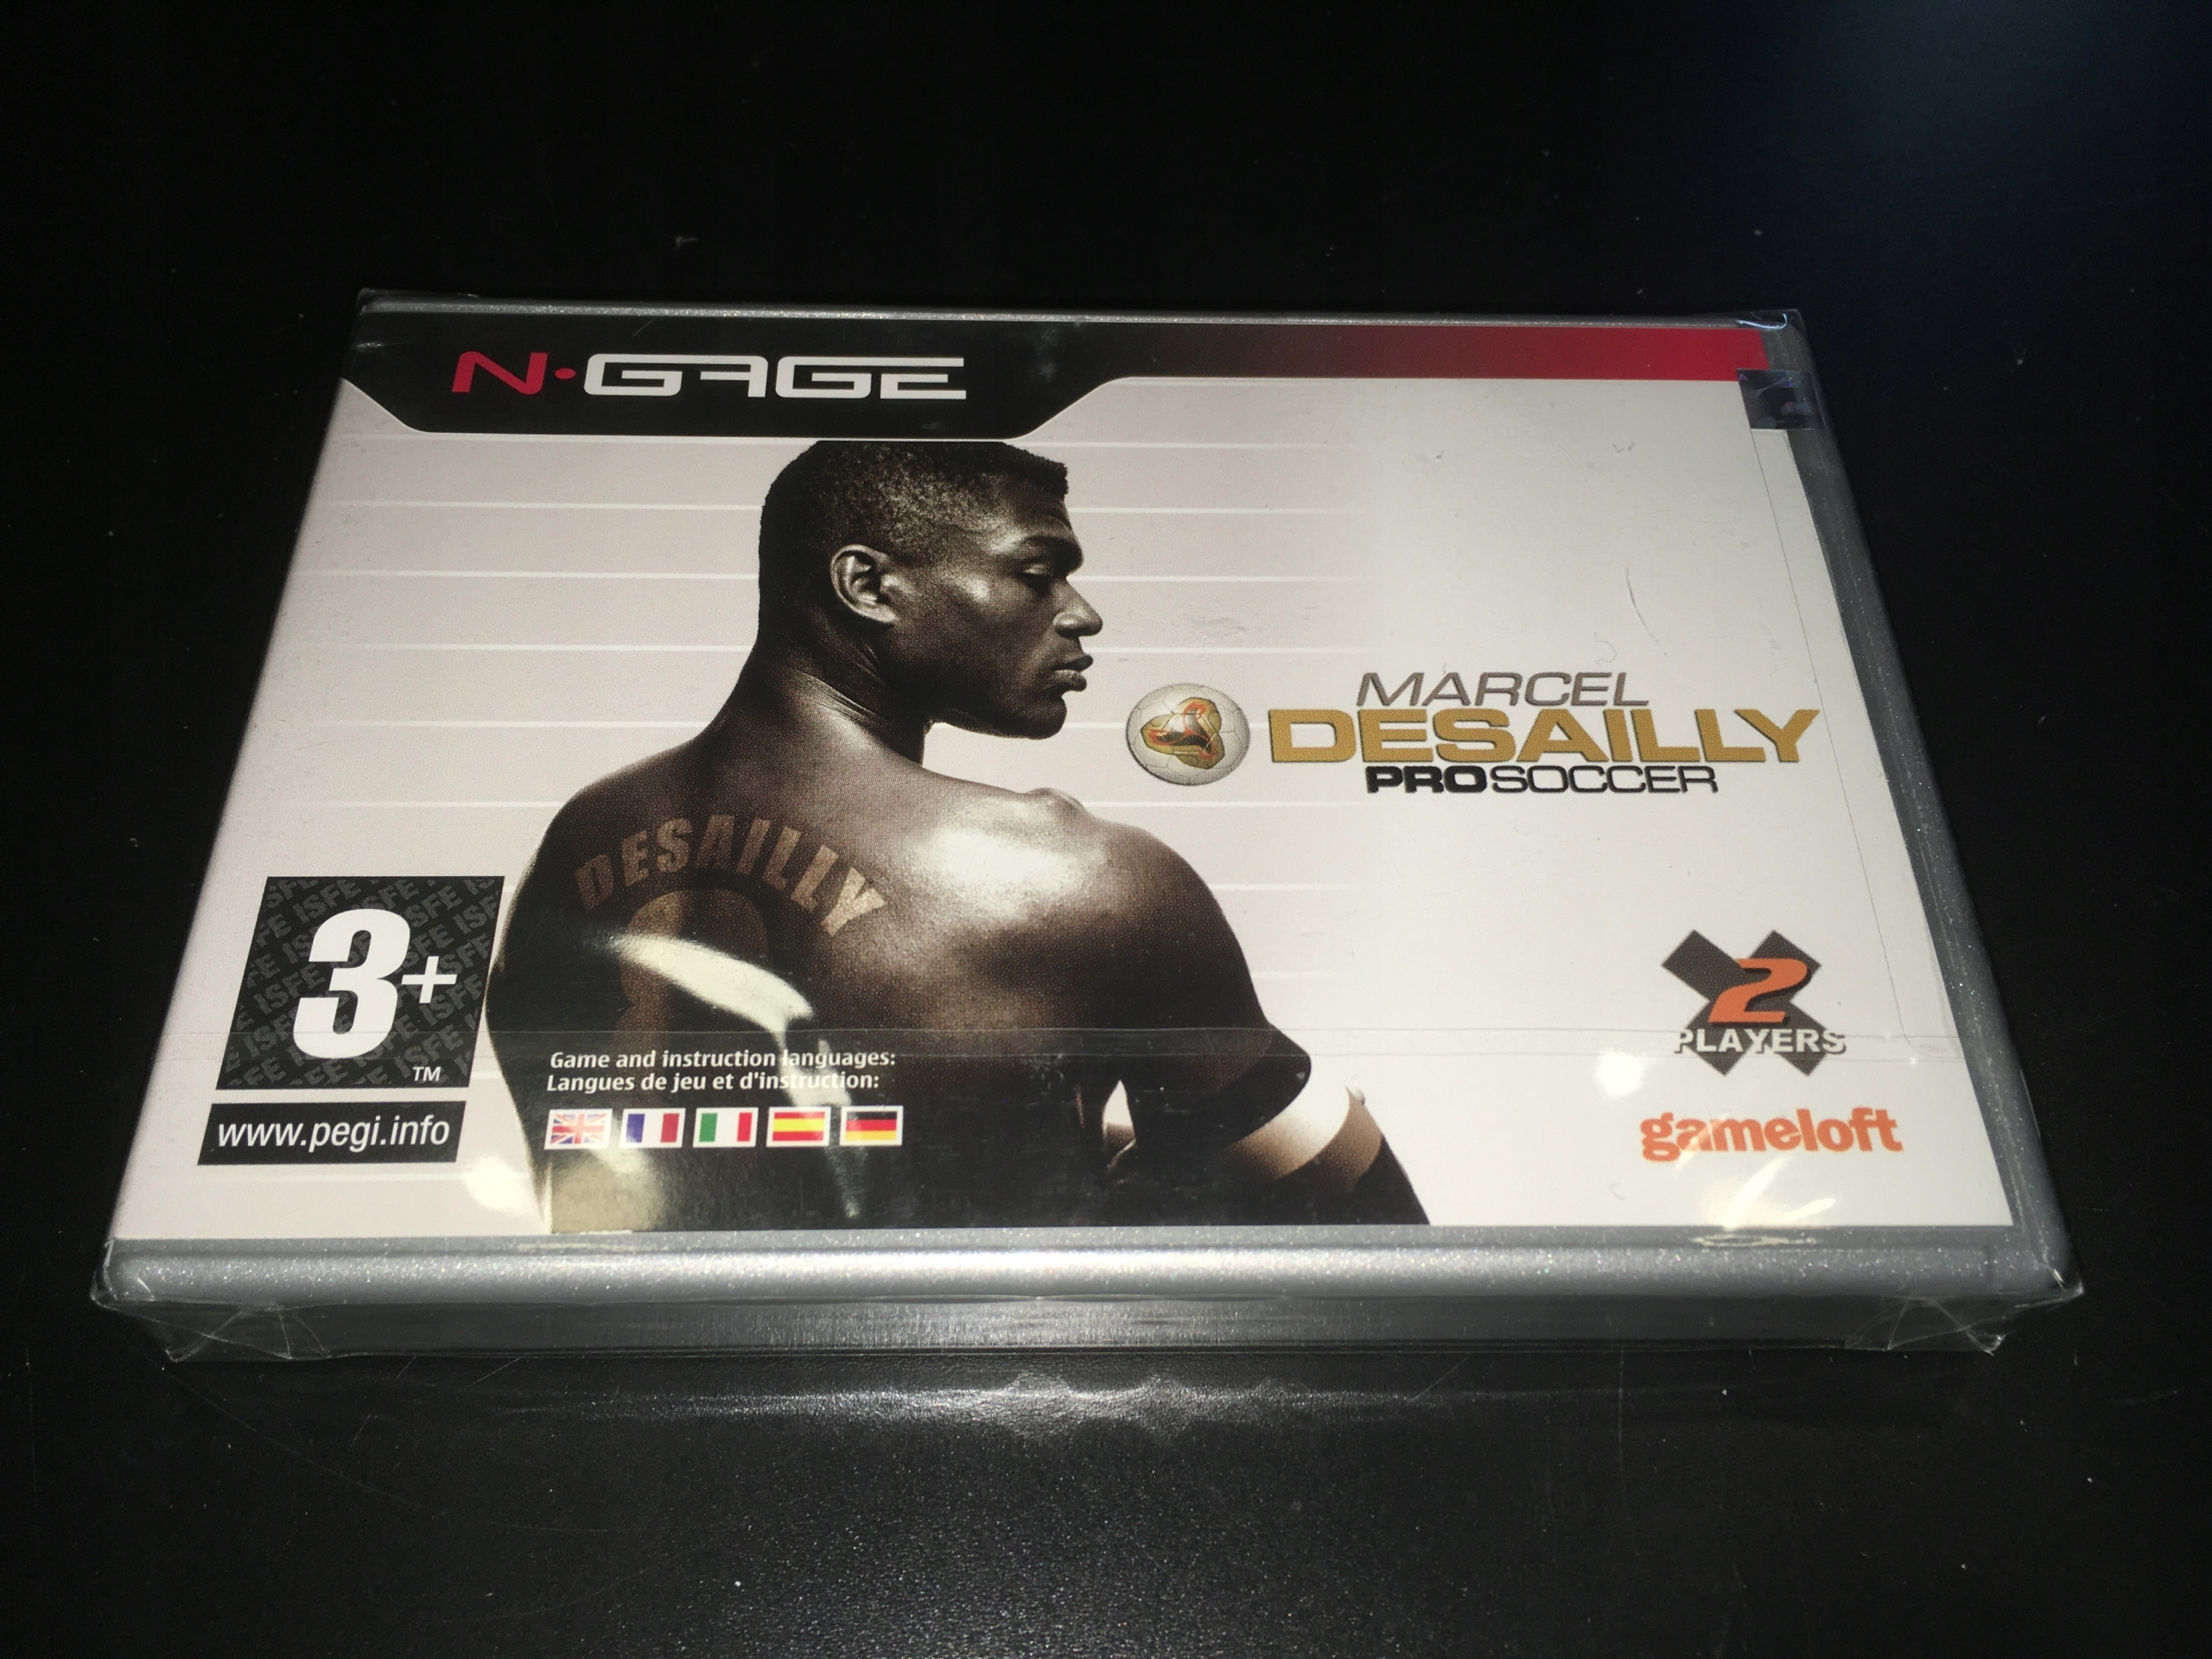 Marcel Desailly Pro Soccer / Nokia N-Gage